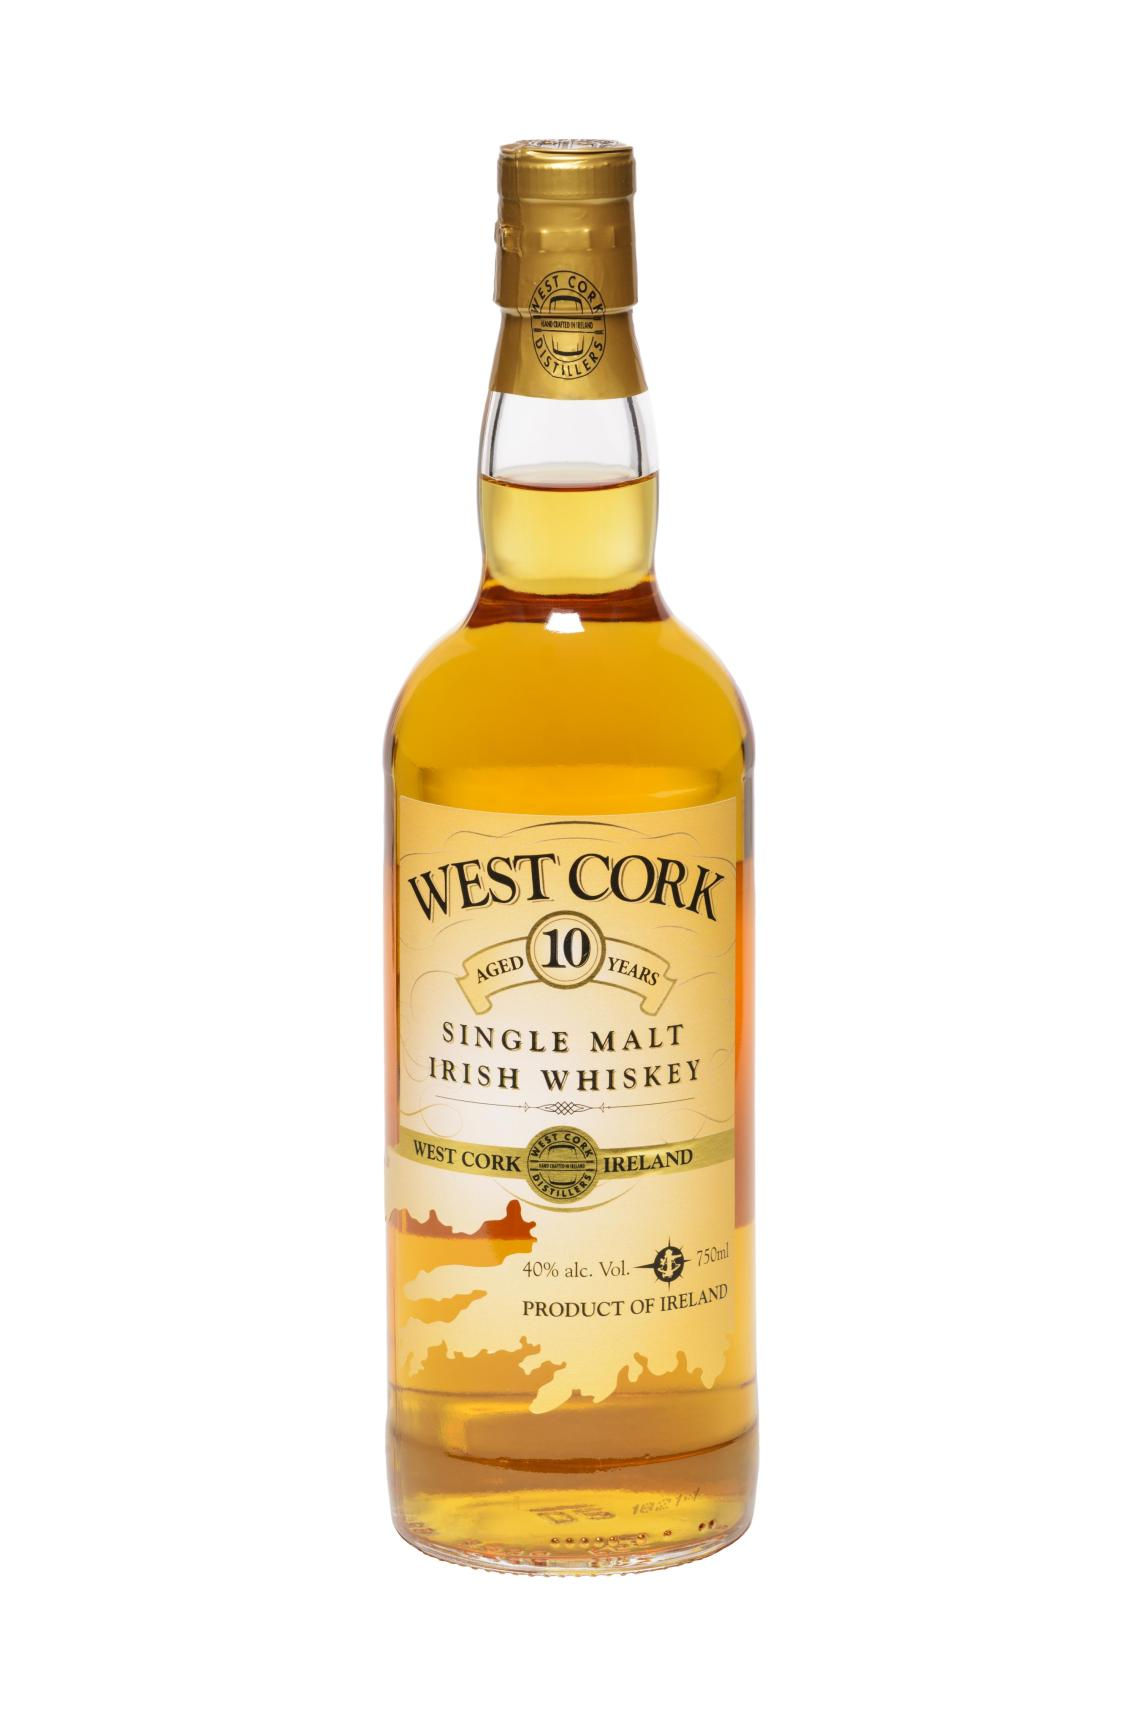 West Cork Single Malt Irish Whiskey 10 Years Old